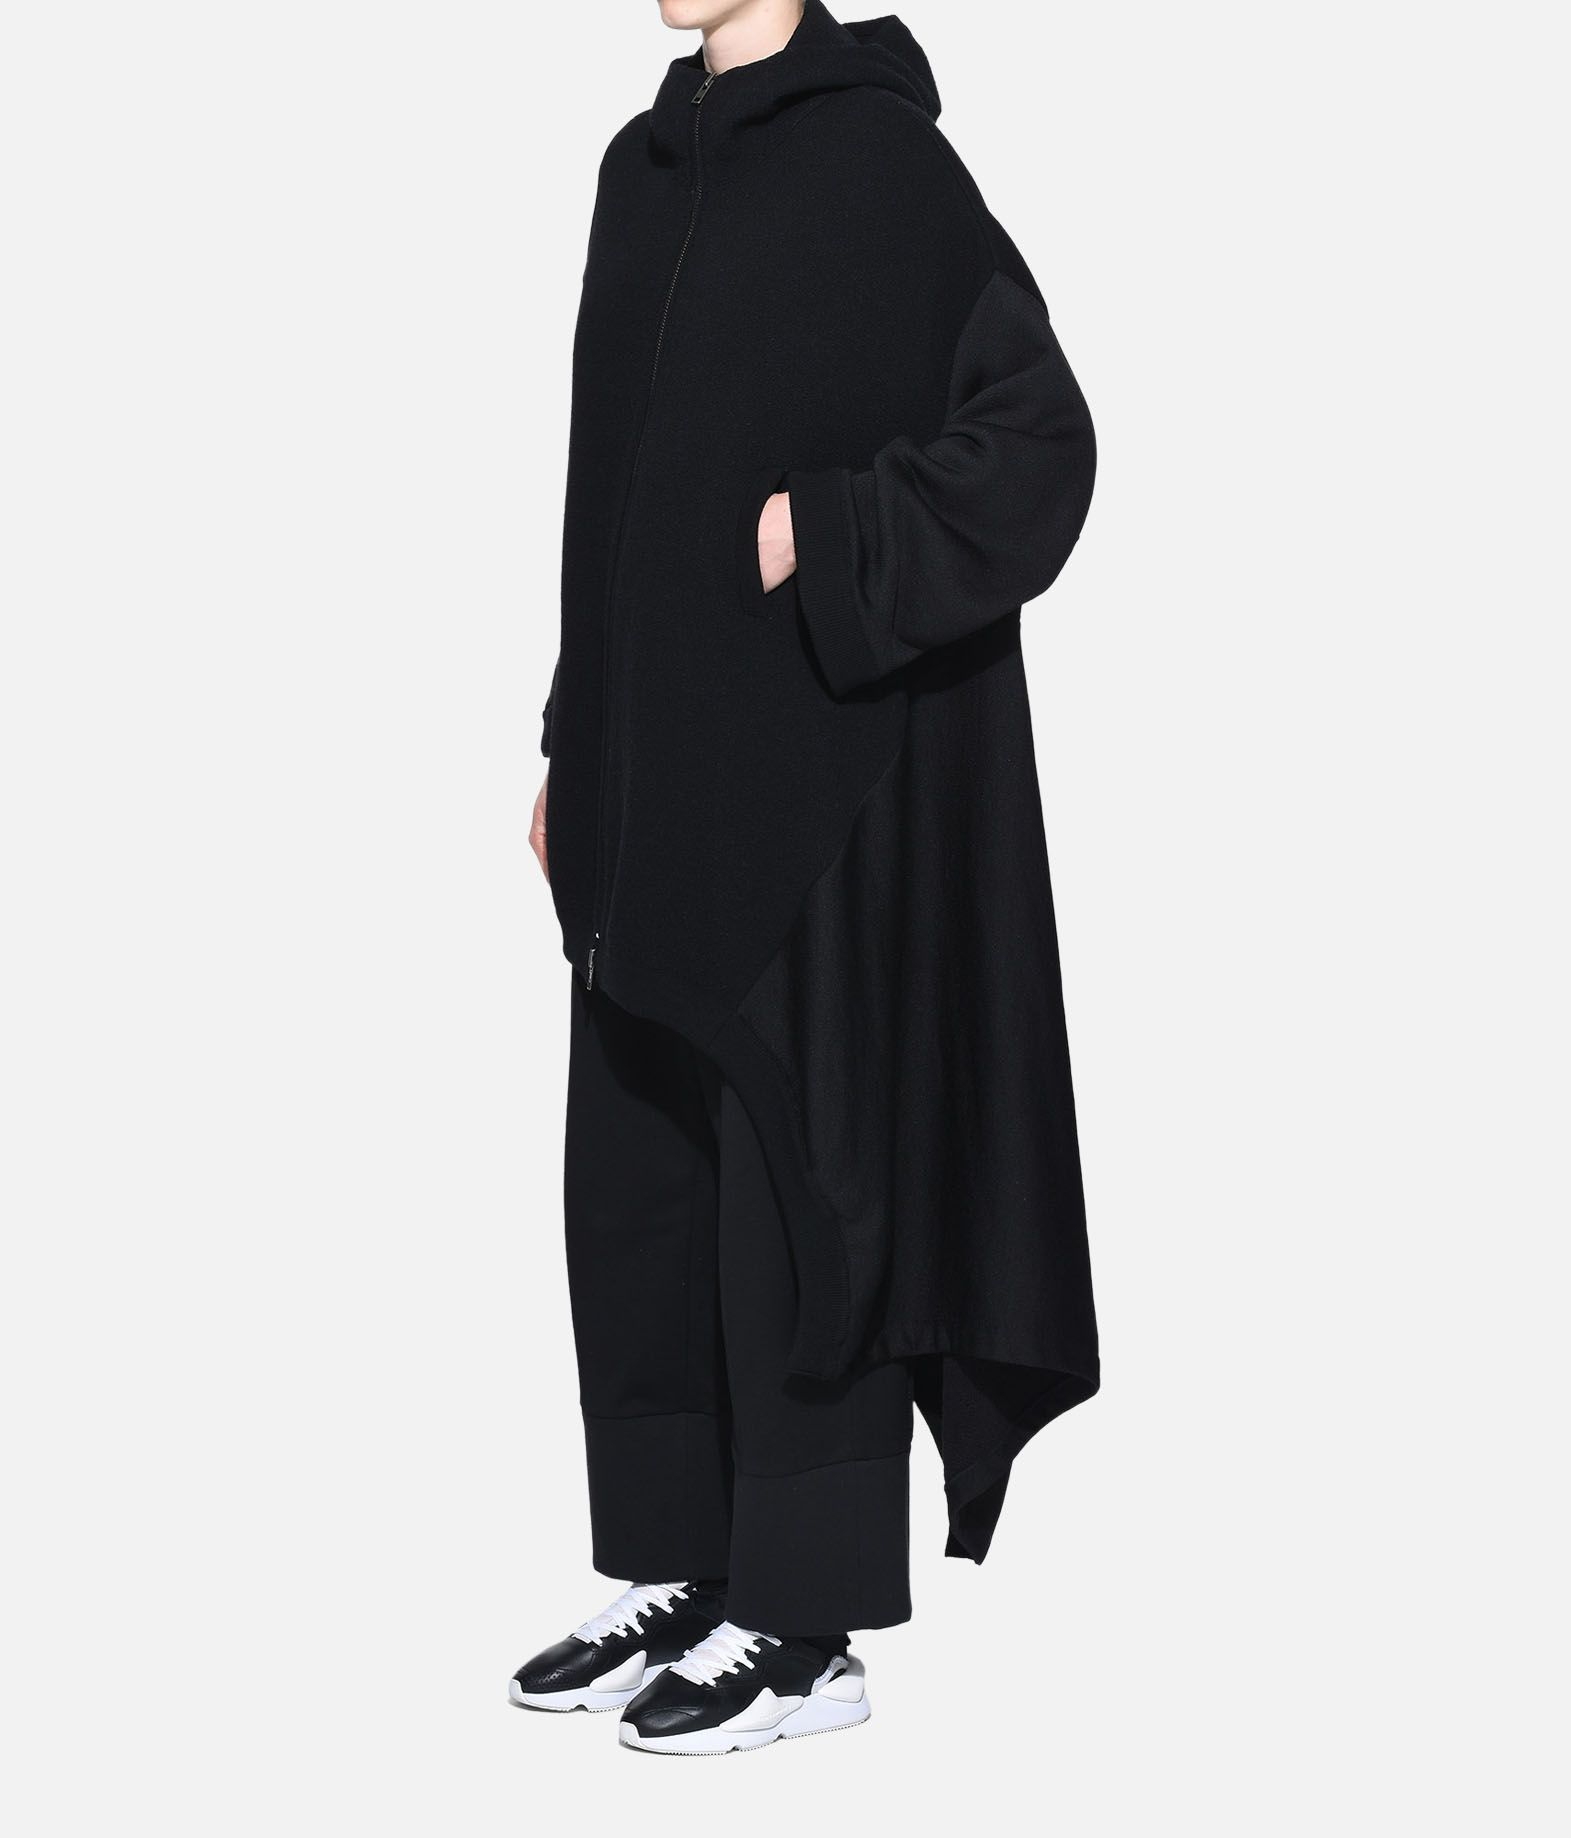 Y-3 Y-3 Knitted Hoodie Dress Robe courte Femme e